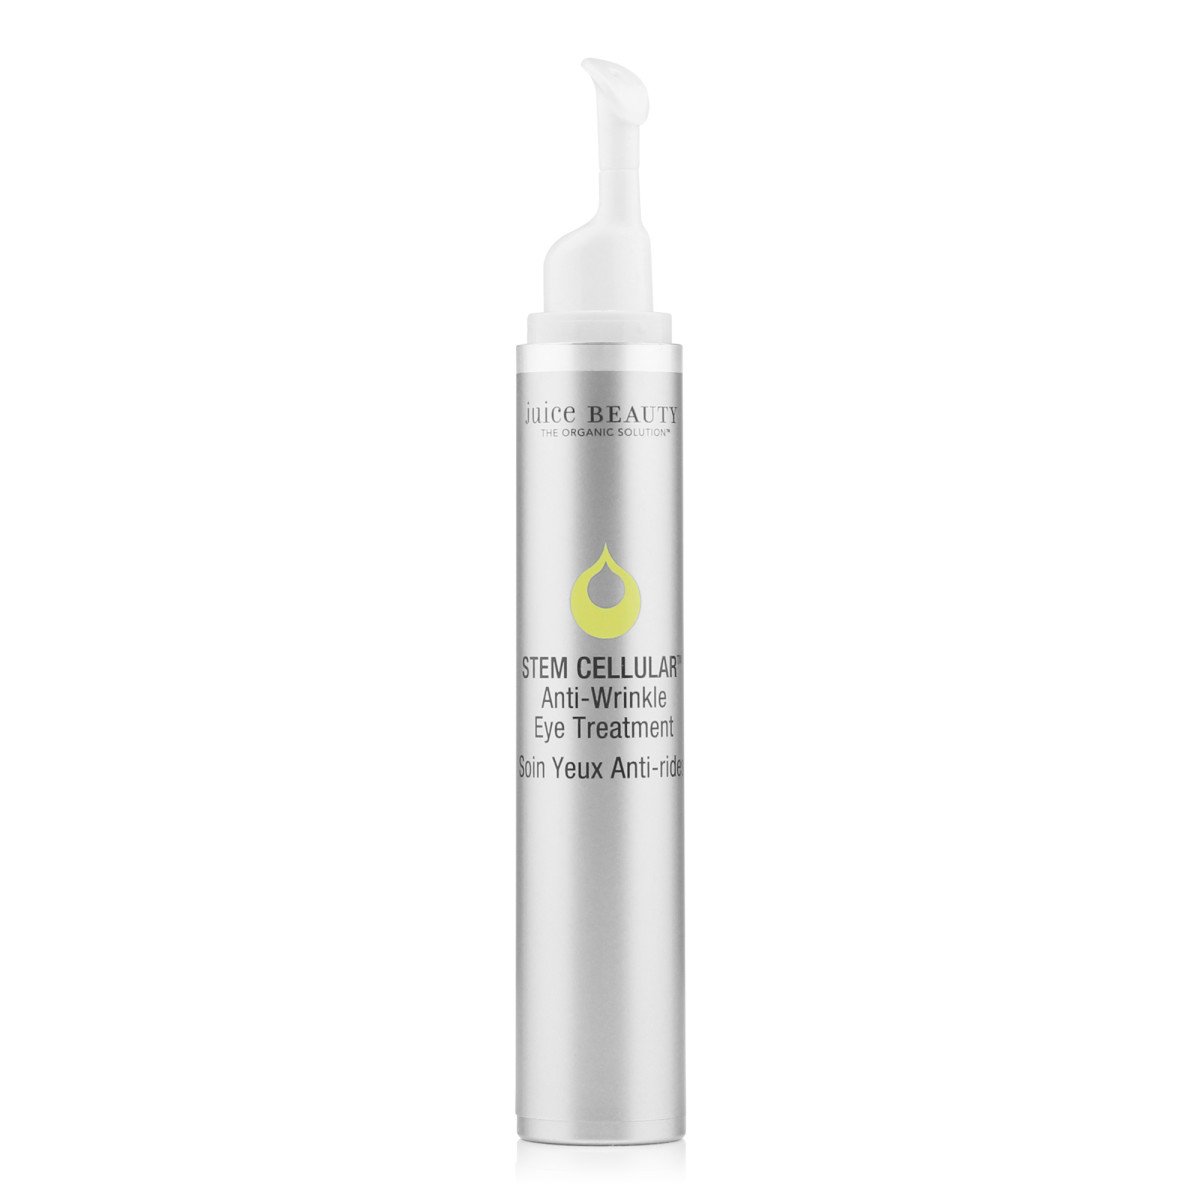 stem-cellular-anti-wrinkle-eye-treatment-web-2000x2000